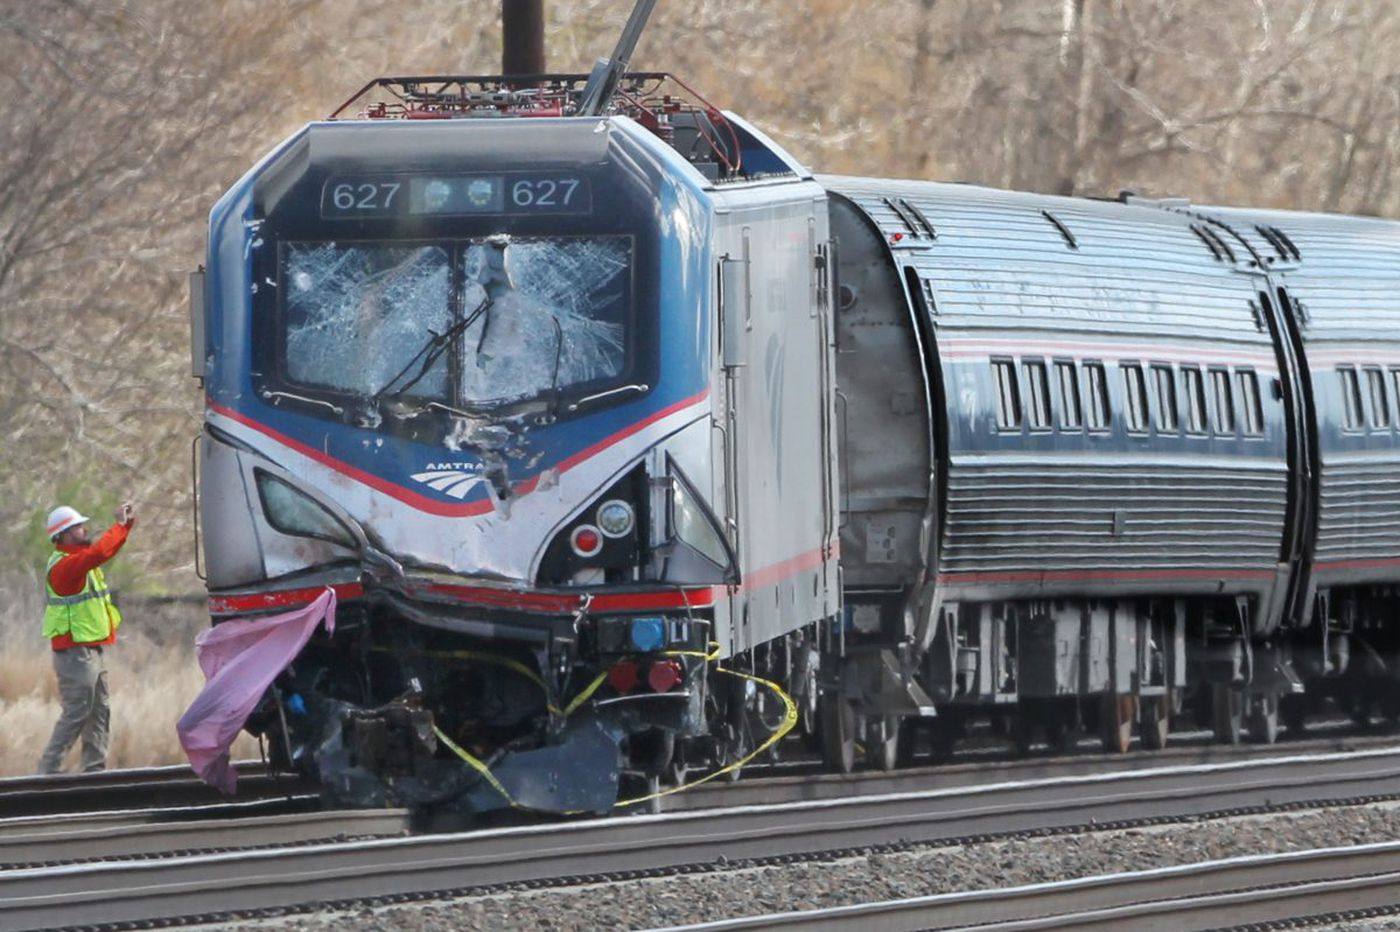 Safety took a back seat at Amtrak, feds say. Then workers died